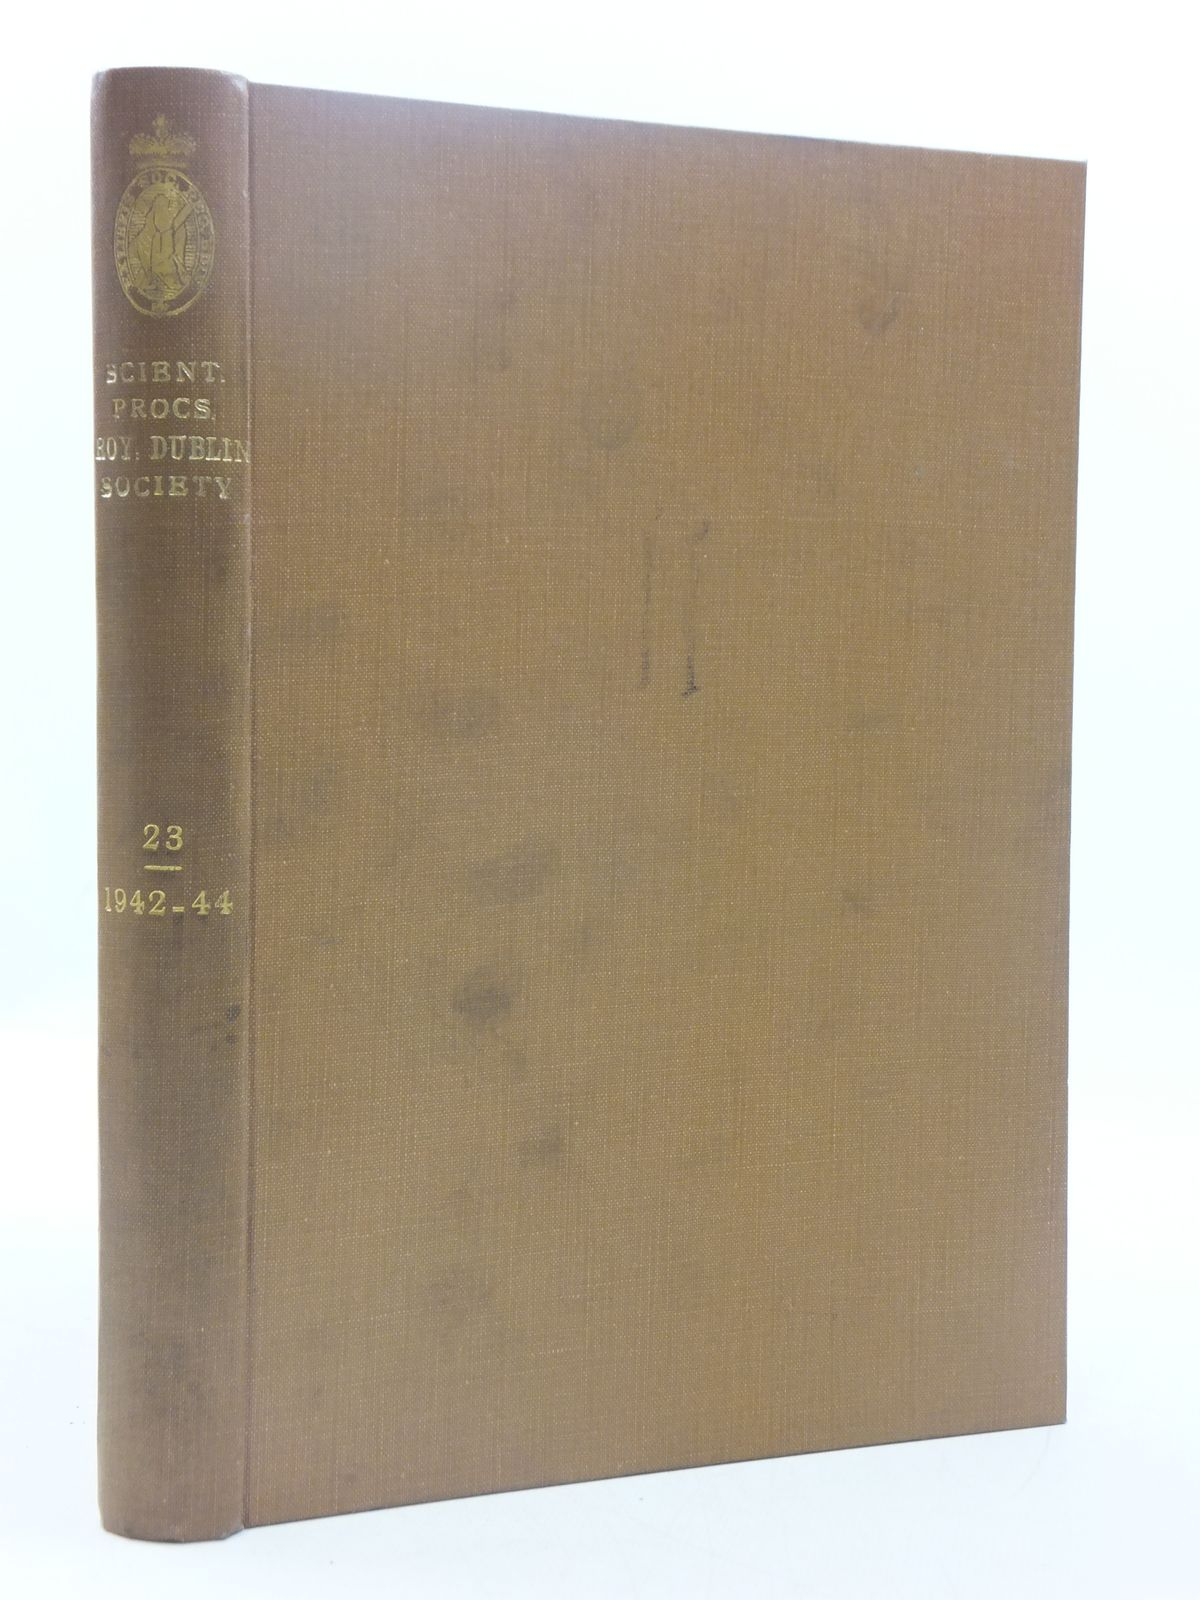 Photo of THE SCIENTIFIC PROCEEDINGS OF THE ROYAL DUBLIN SOCIETY VOLUME 23 (1942-44) published by Royal Dublin Society (STOCK CODE: 1605205)  for sale by Stella & Rose's Books